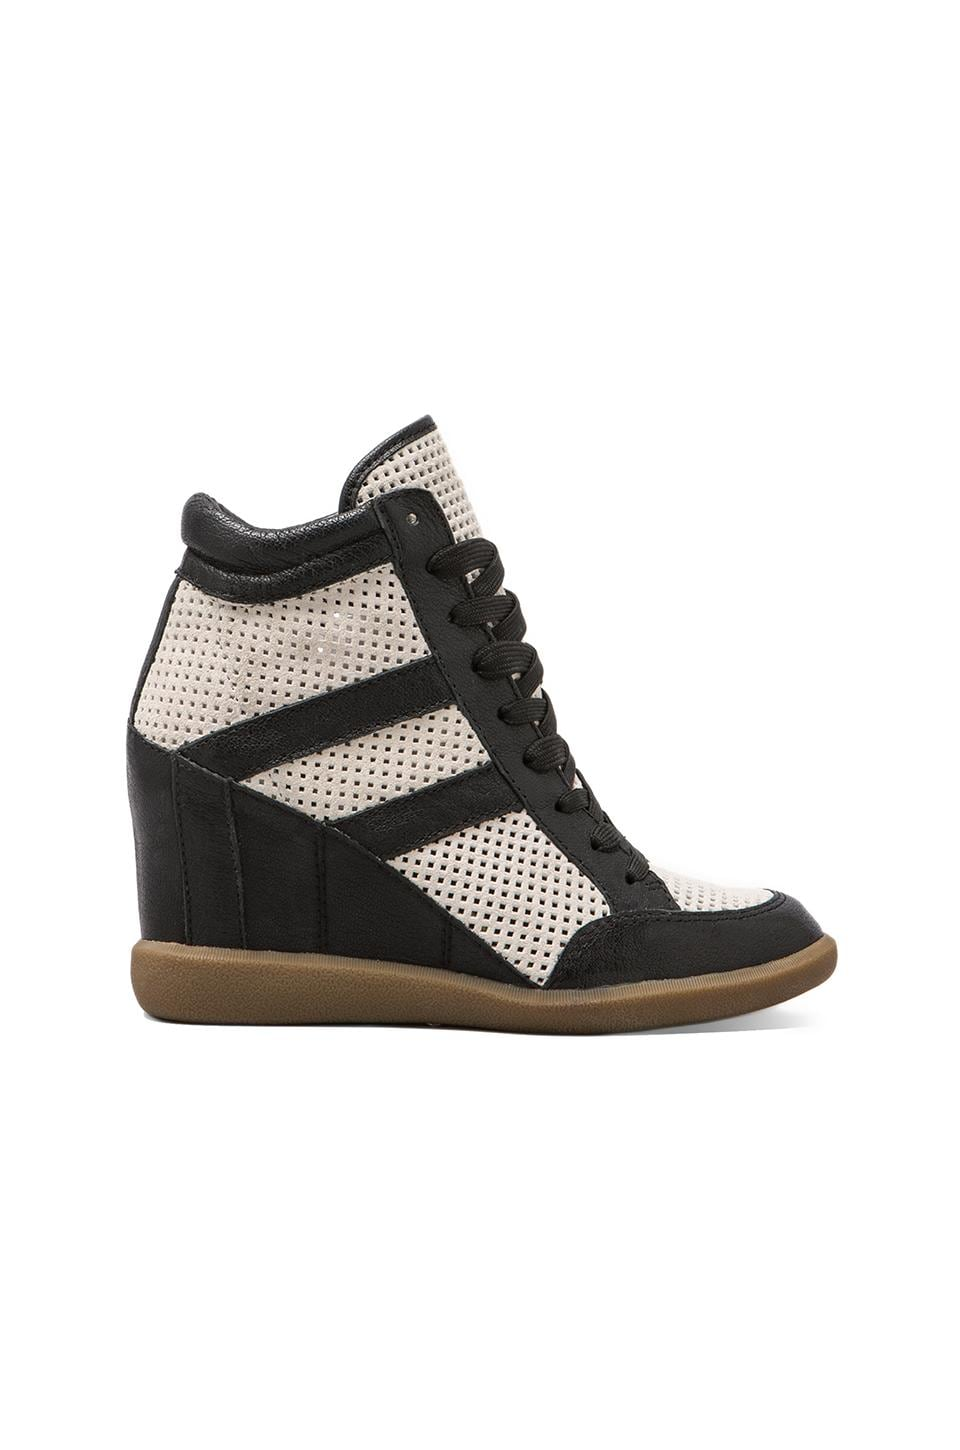 Sam Edelman Bolton Sneaker in Snow White/Black